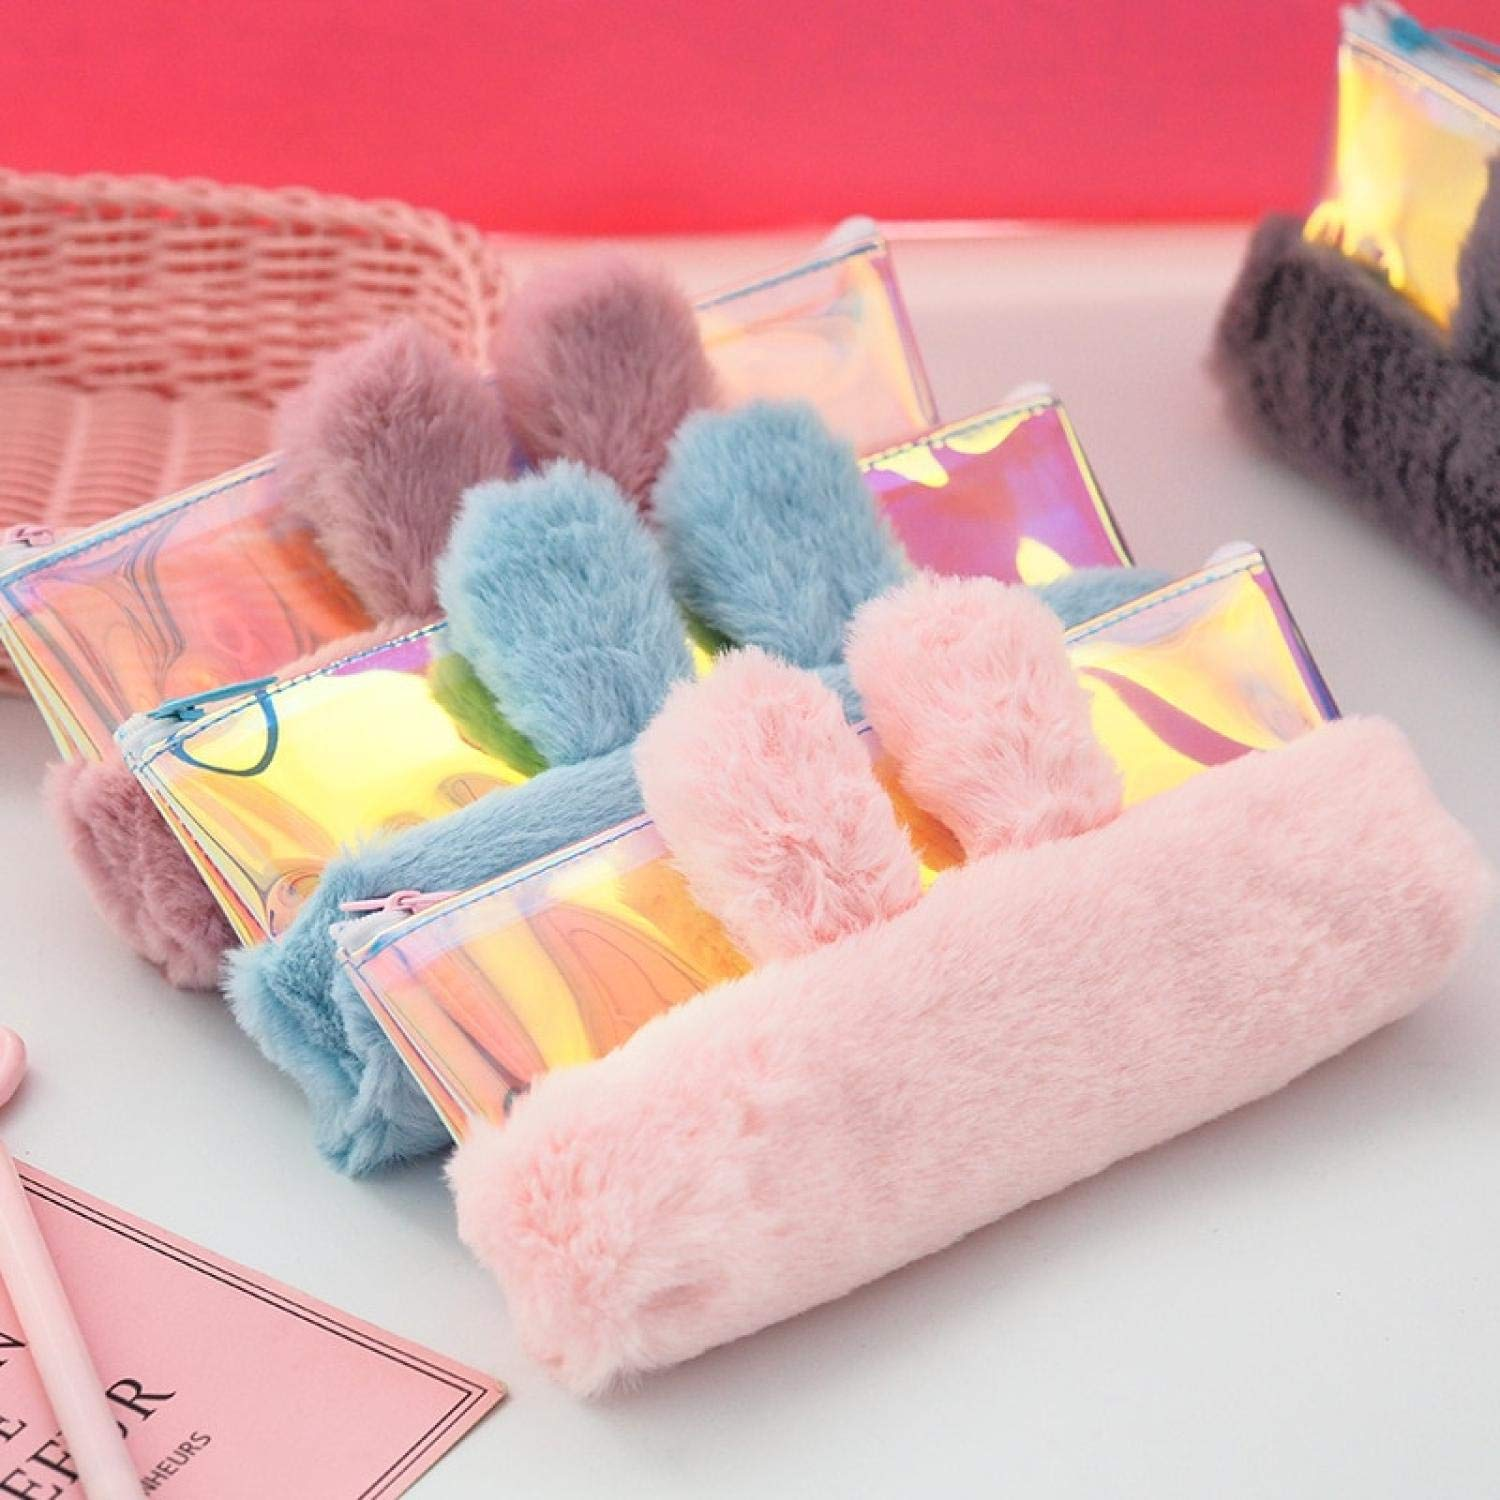 Amazon.com: 1 Pcs Kawaii Pencil Case Meng Rabbit Plush ...